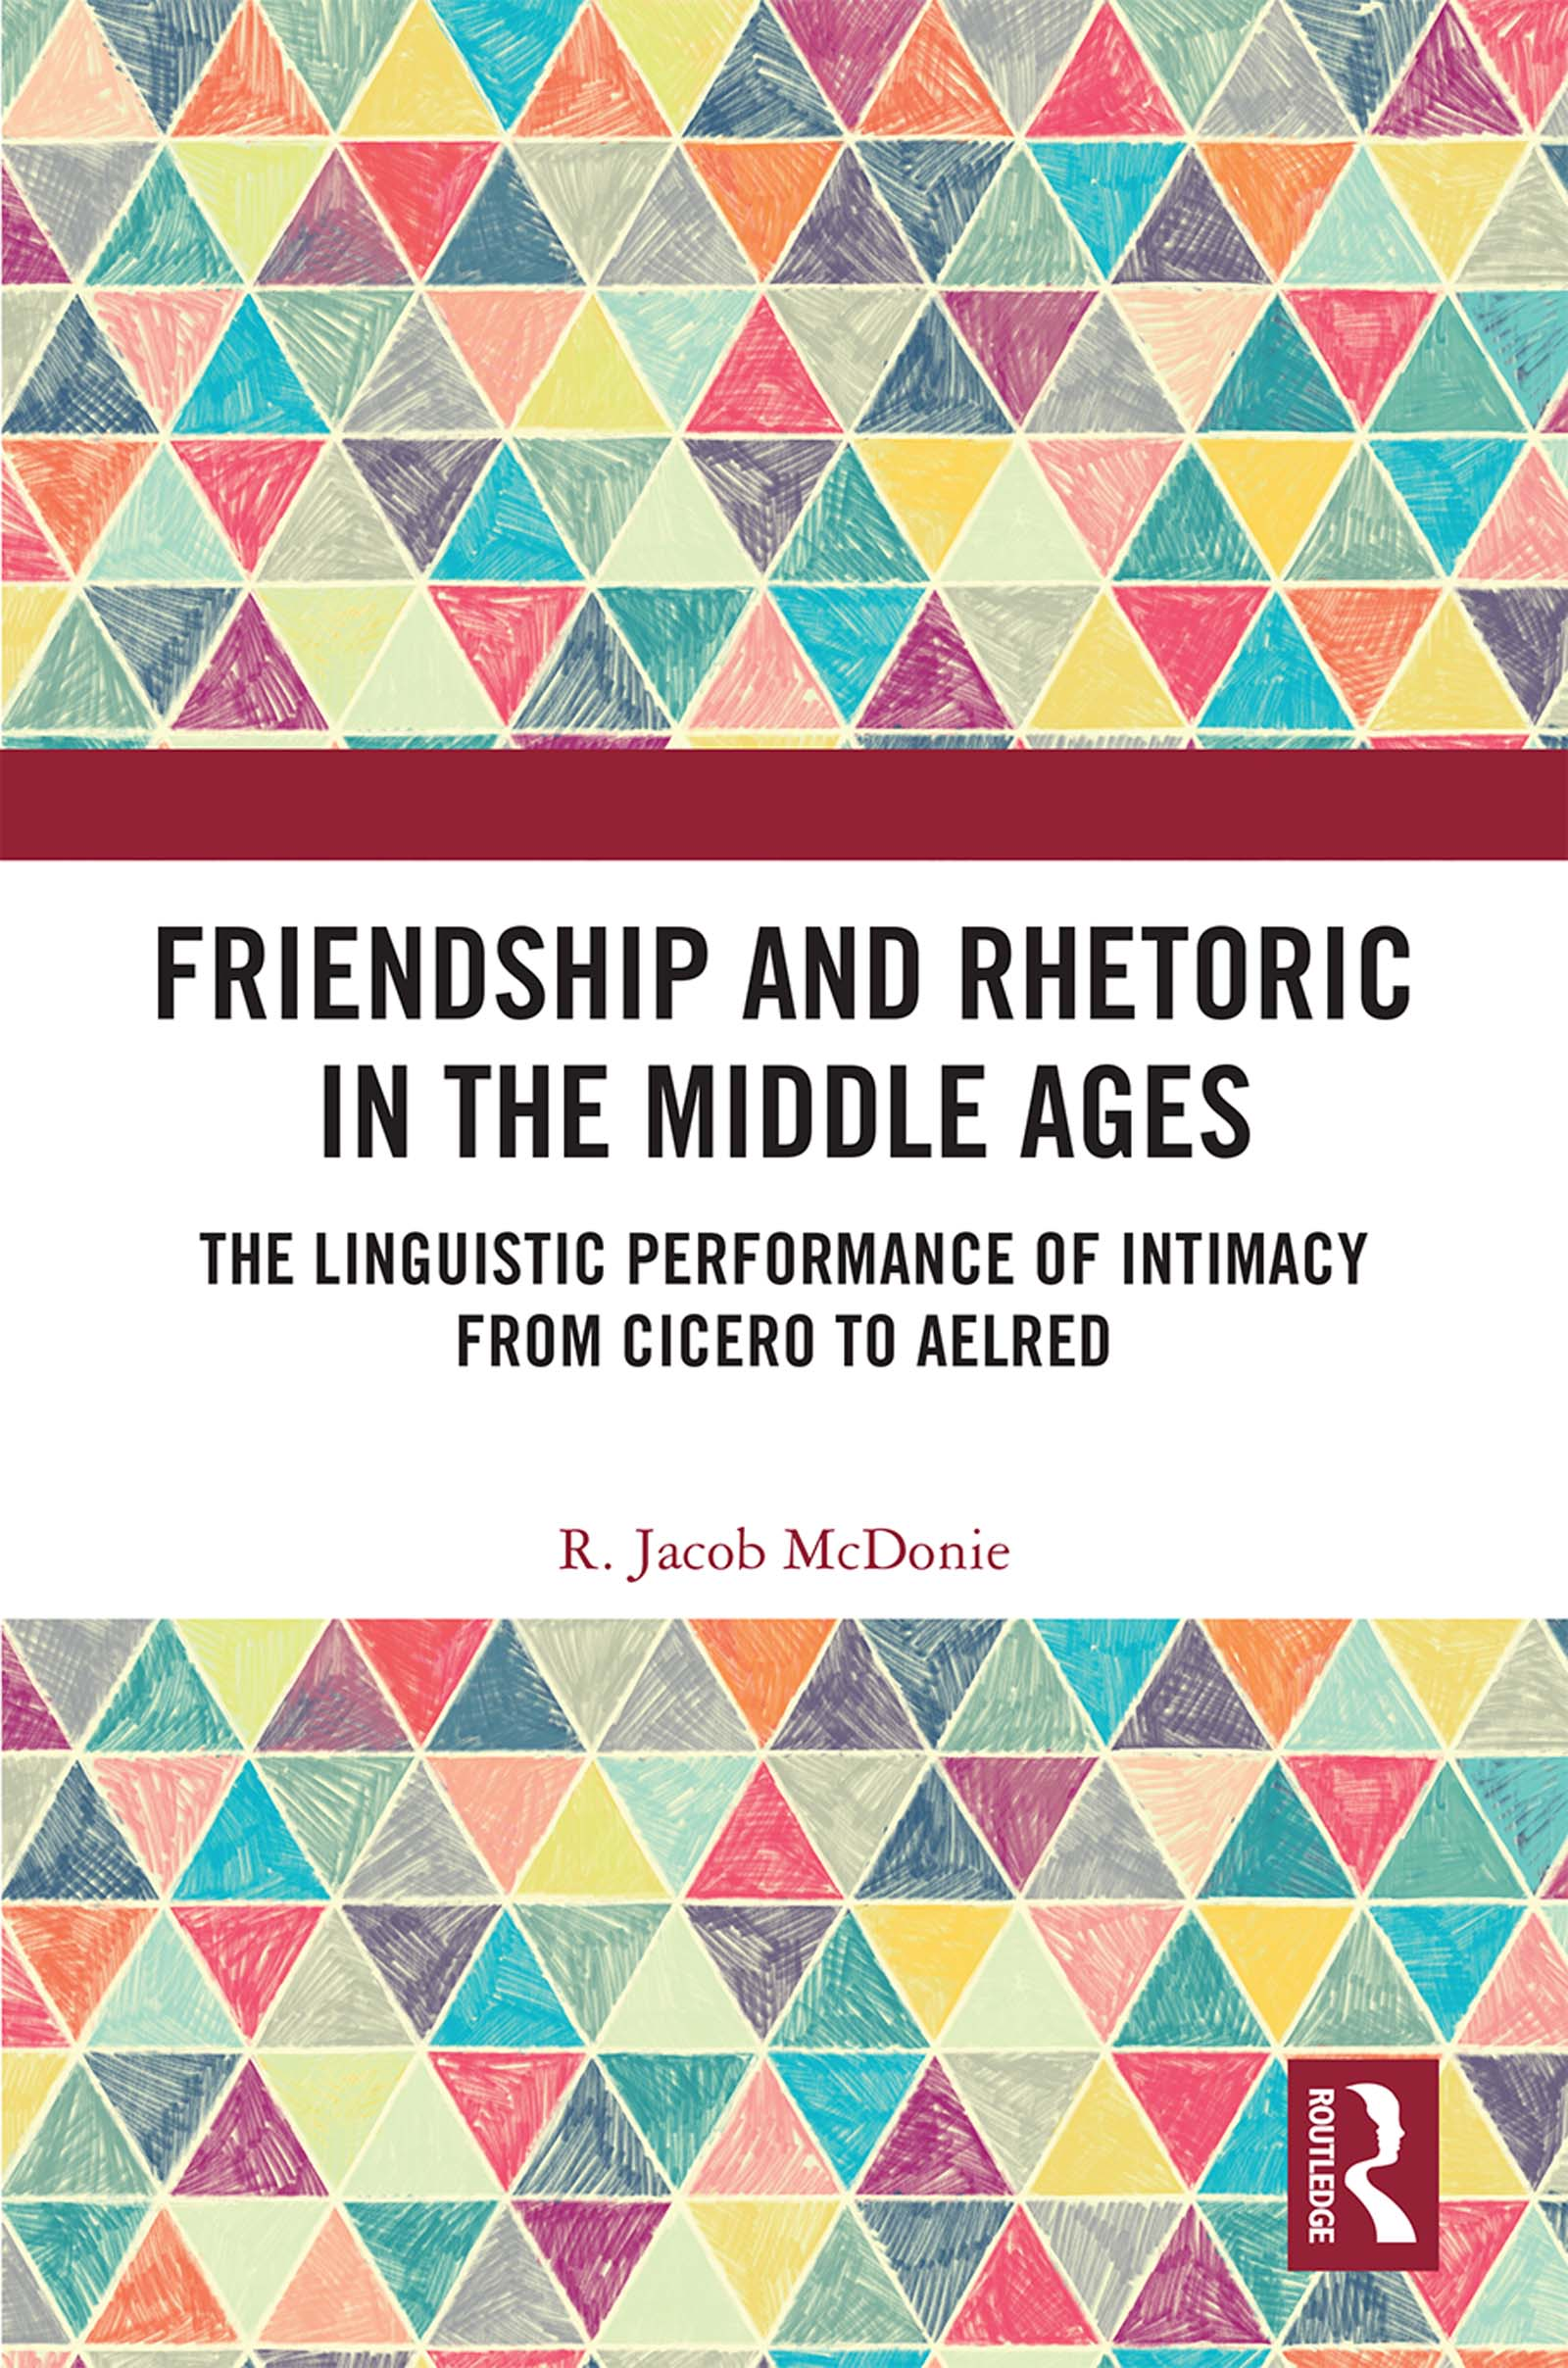 Friendship and Rhetoric in the Middle Ages: The Linguistic Performance of Intimacy from Cicero to Aelred, 1st Edition (Hardback) book cover